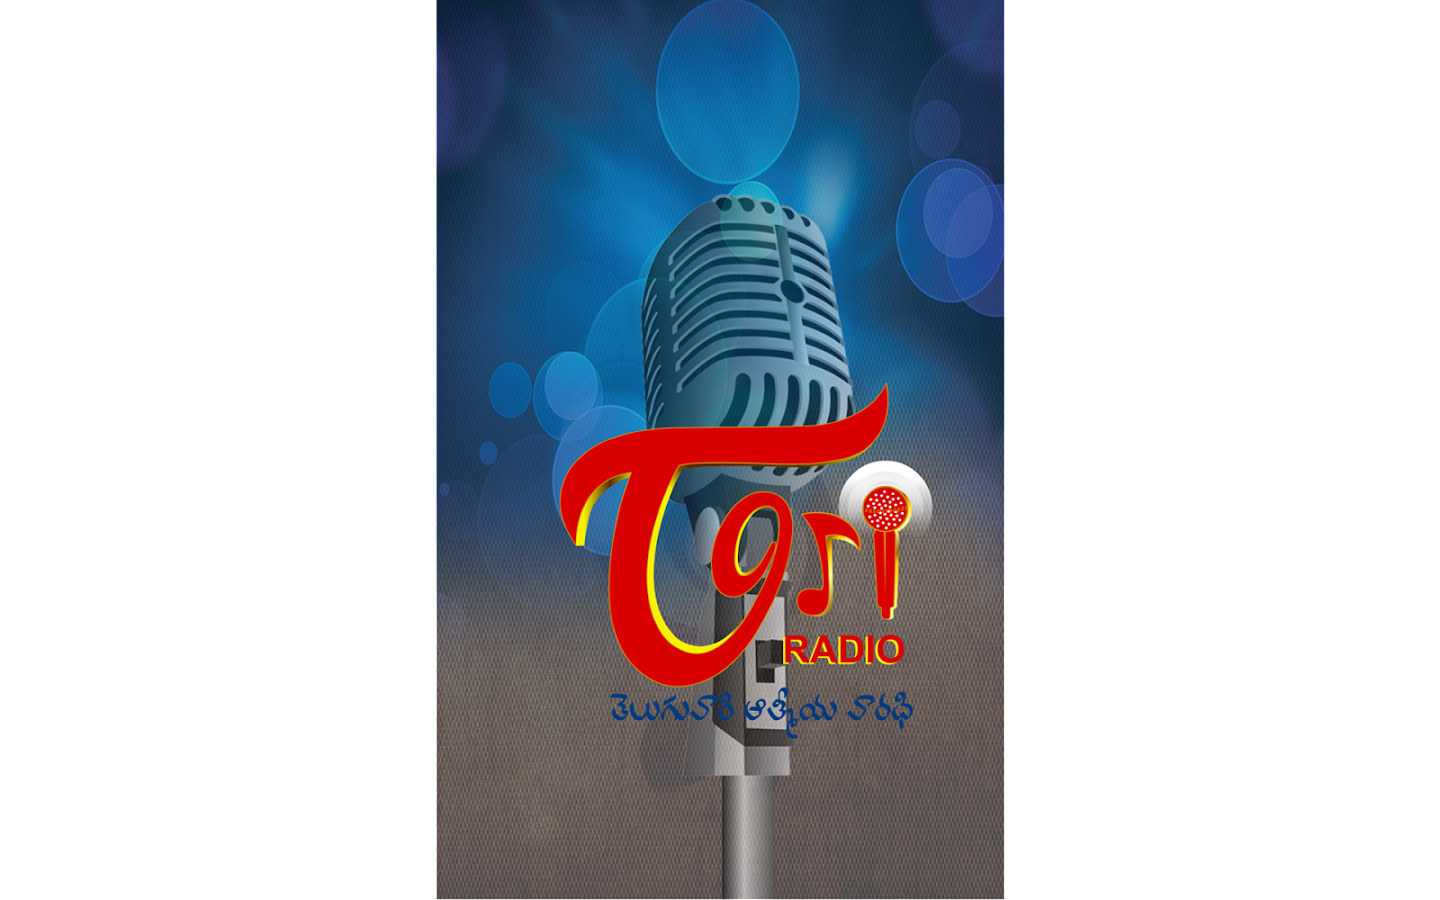 TORi - TeluguOne Radio- screenshot